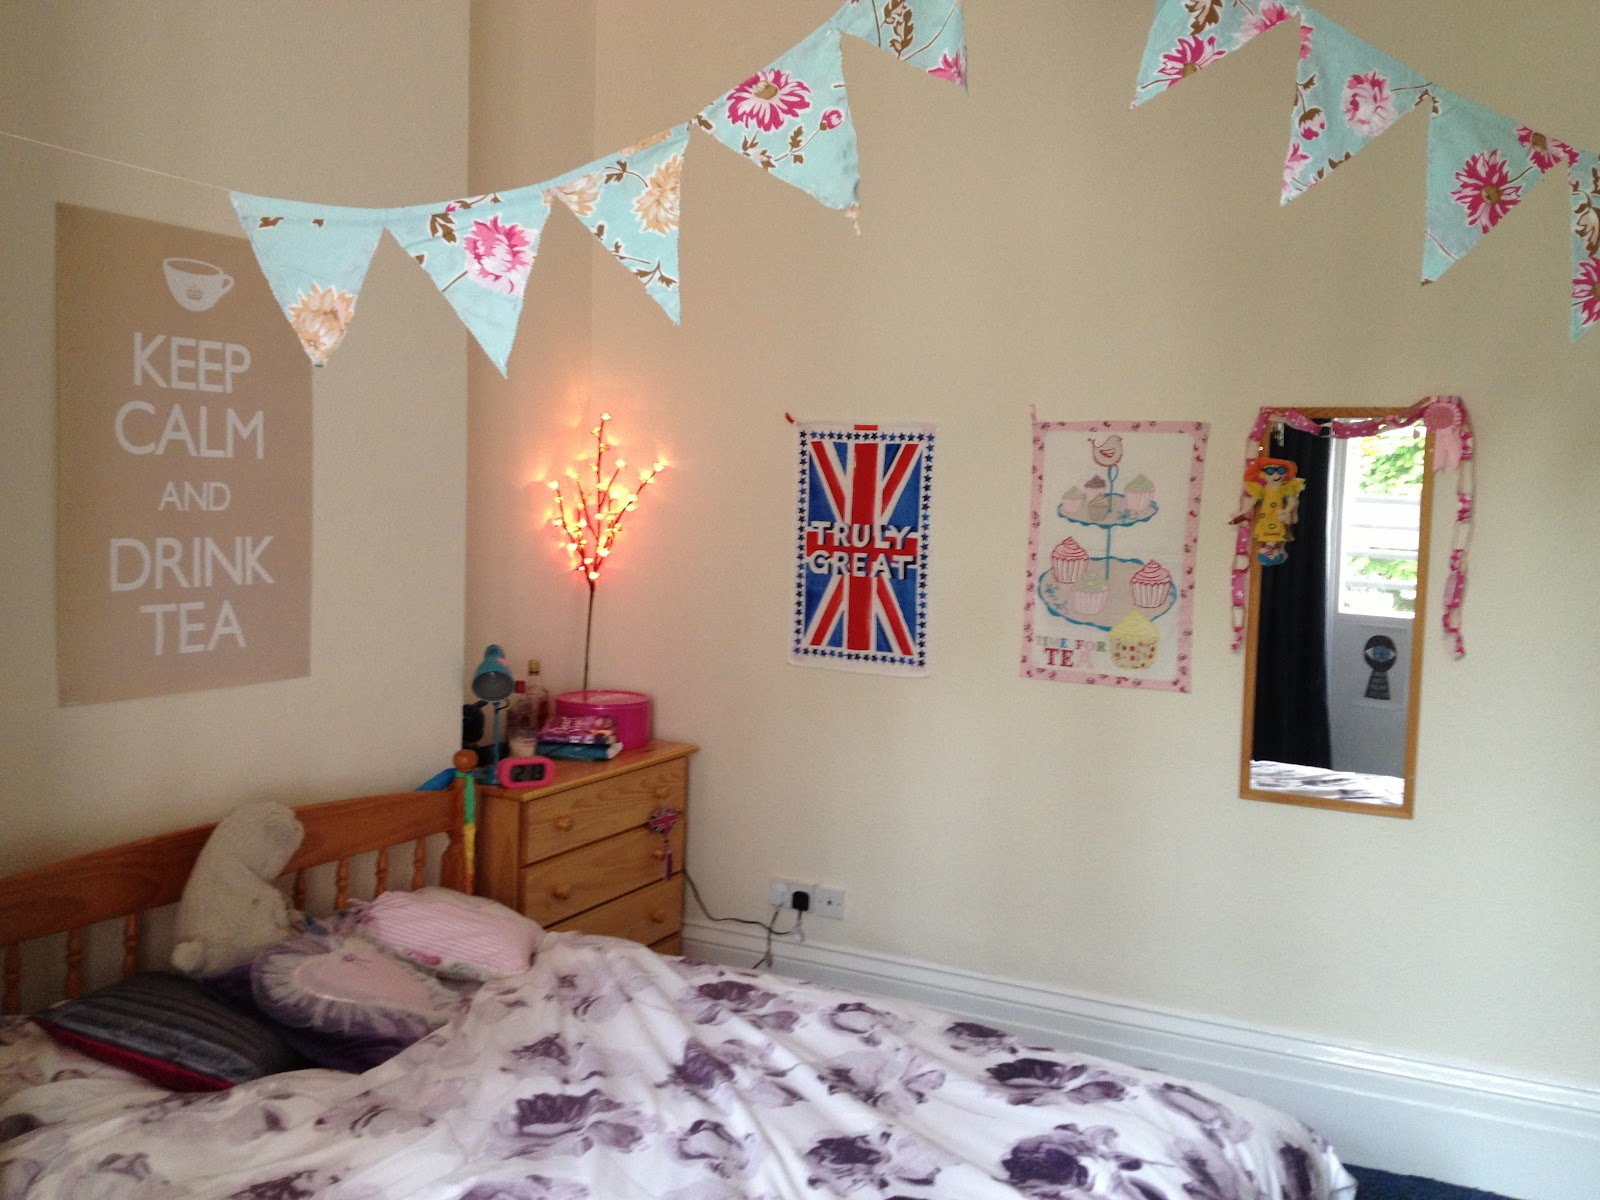 The twenty best ways to decorate your student room at uni How can i decorate my house